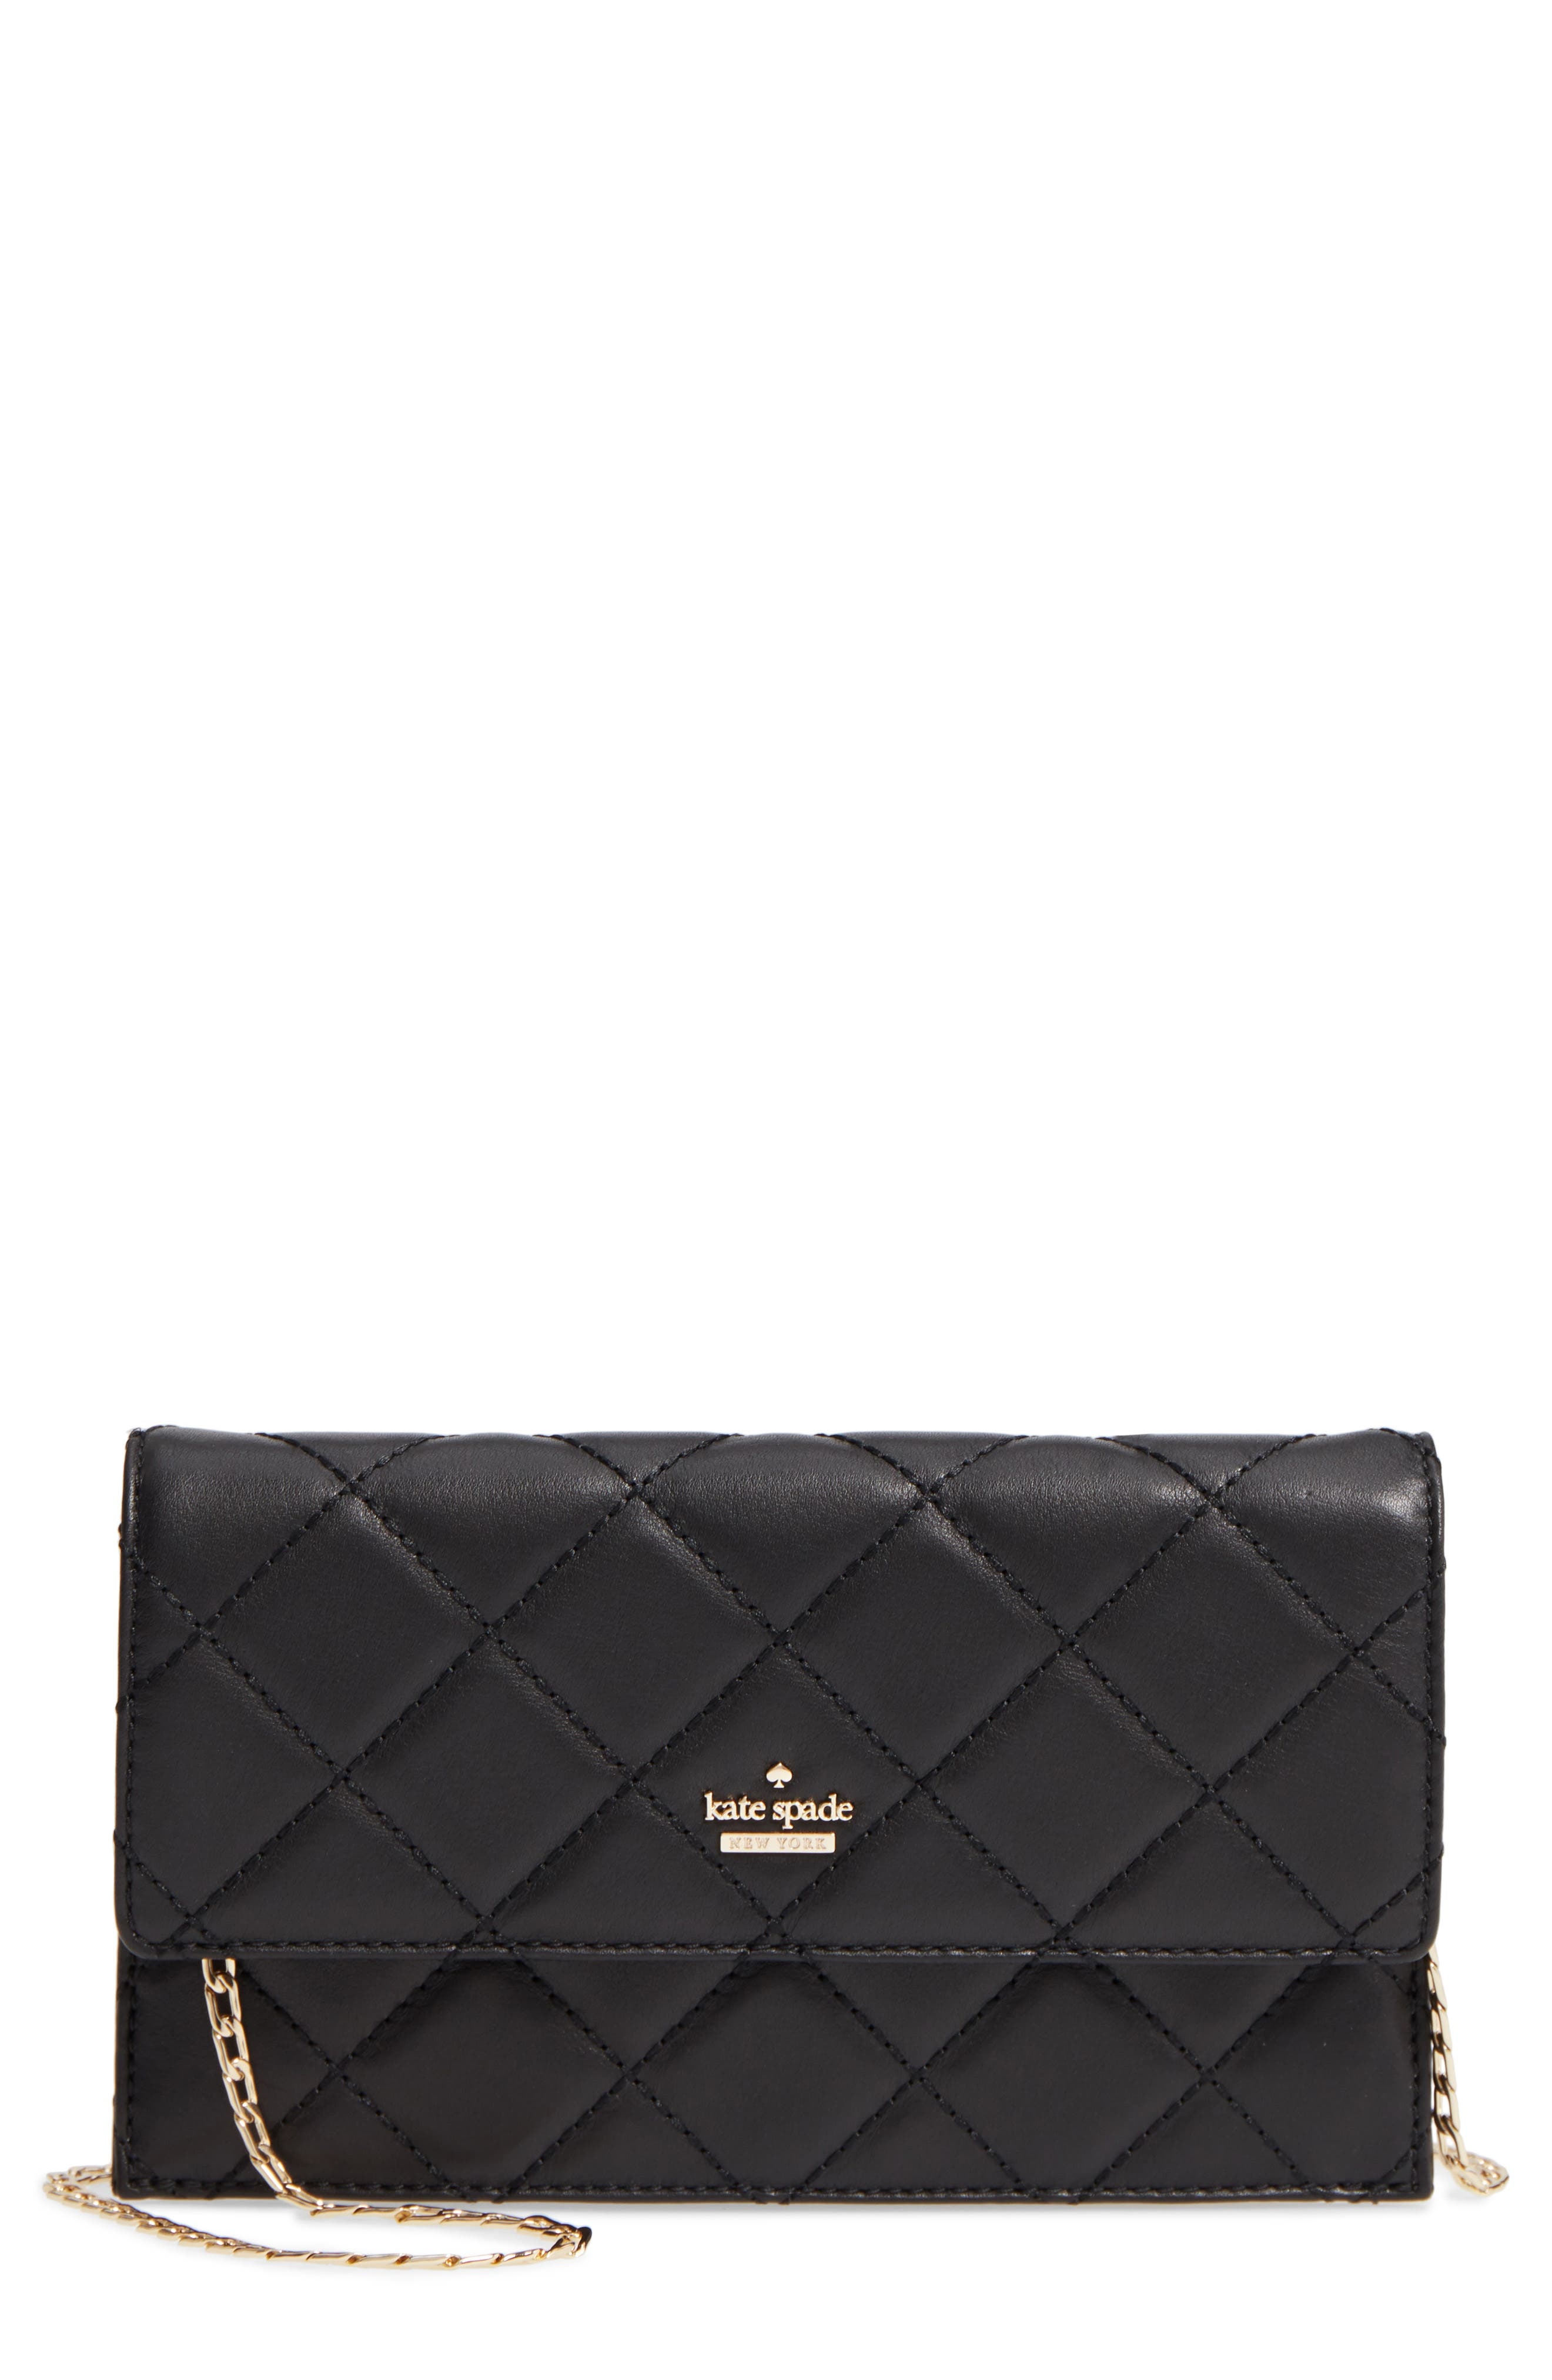 emerson place - brennan quilted leather convertible clutch & card holder,                         Main,                         color,